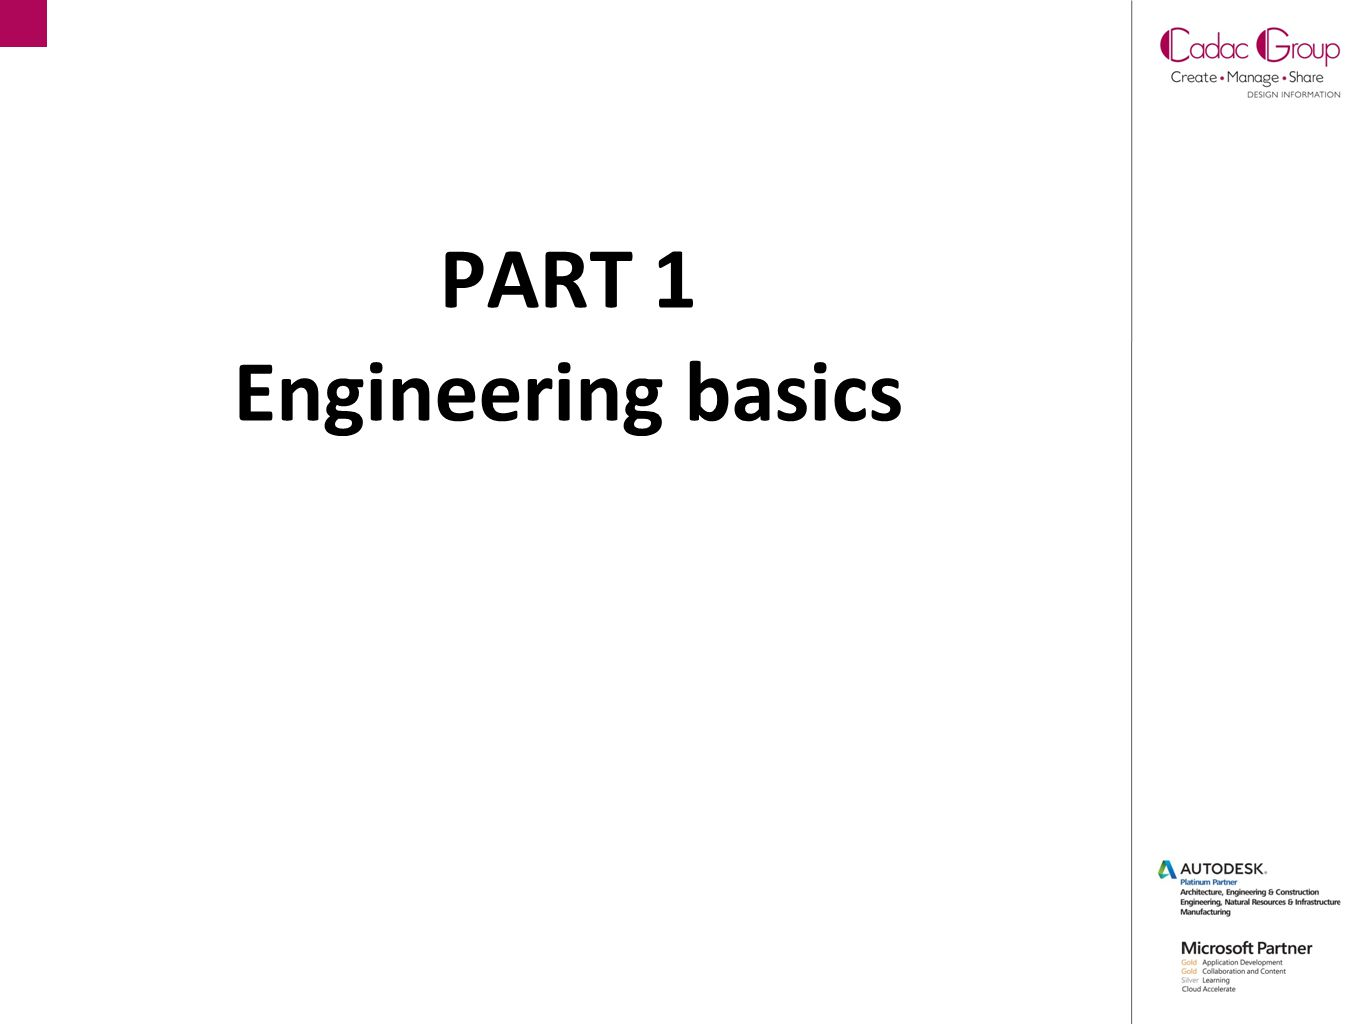 PART 1 Engineering basics